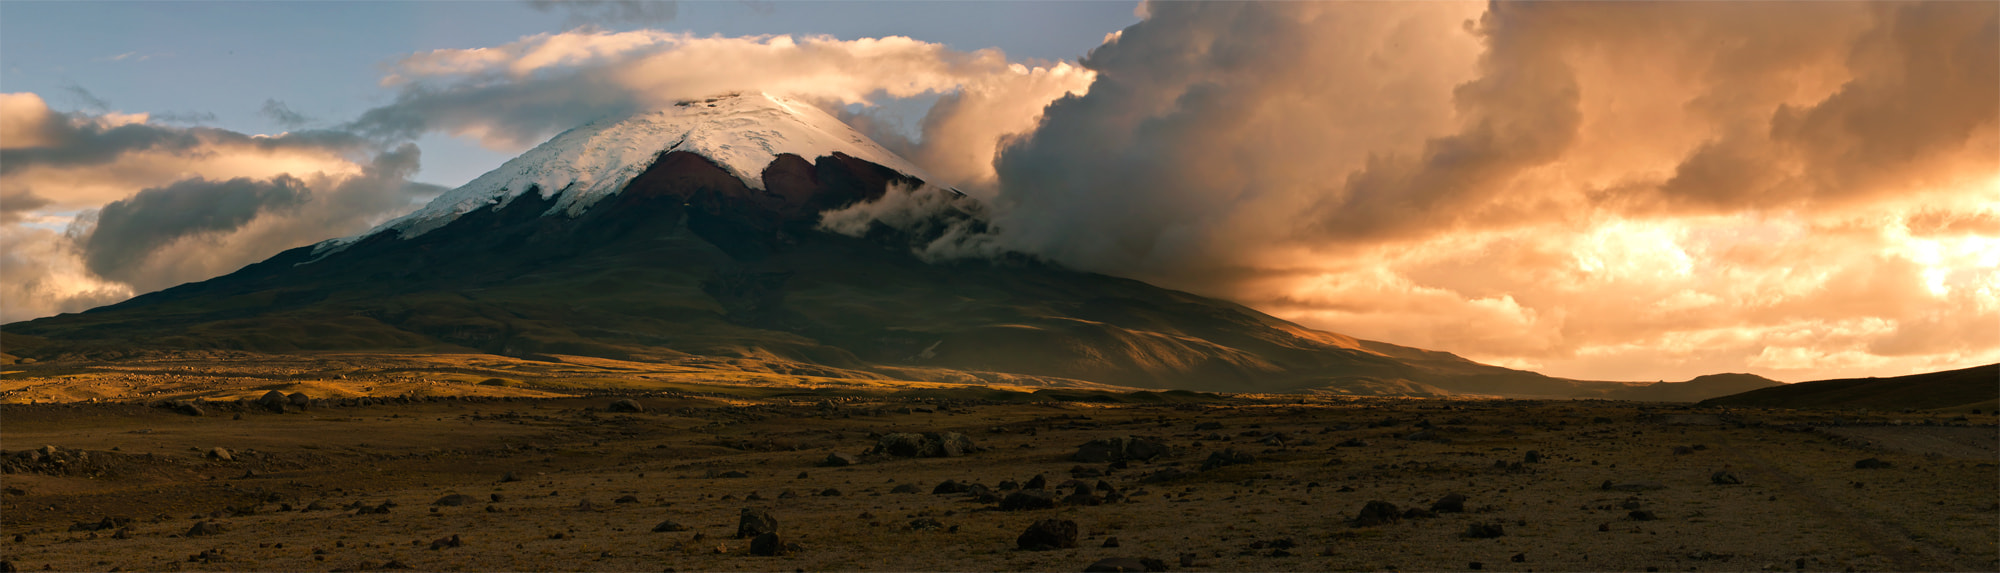 Photograph Cotopaxi Panorama by Fernando Salas on 500px